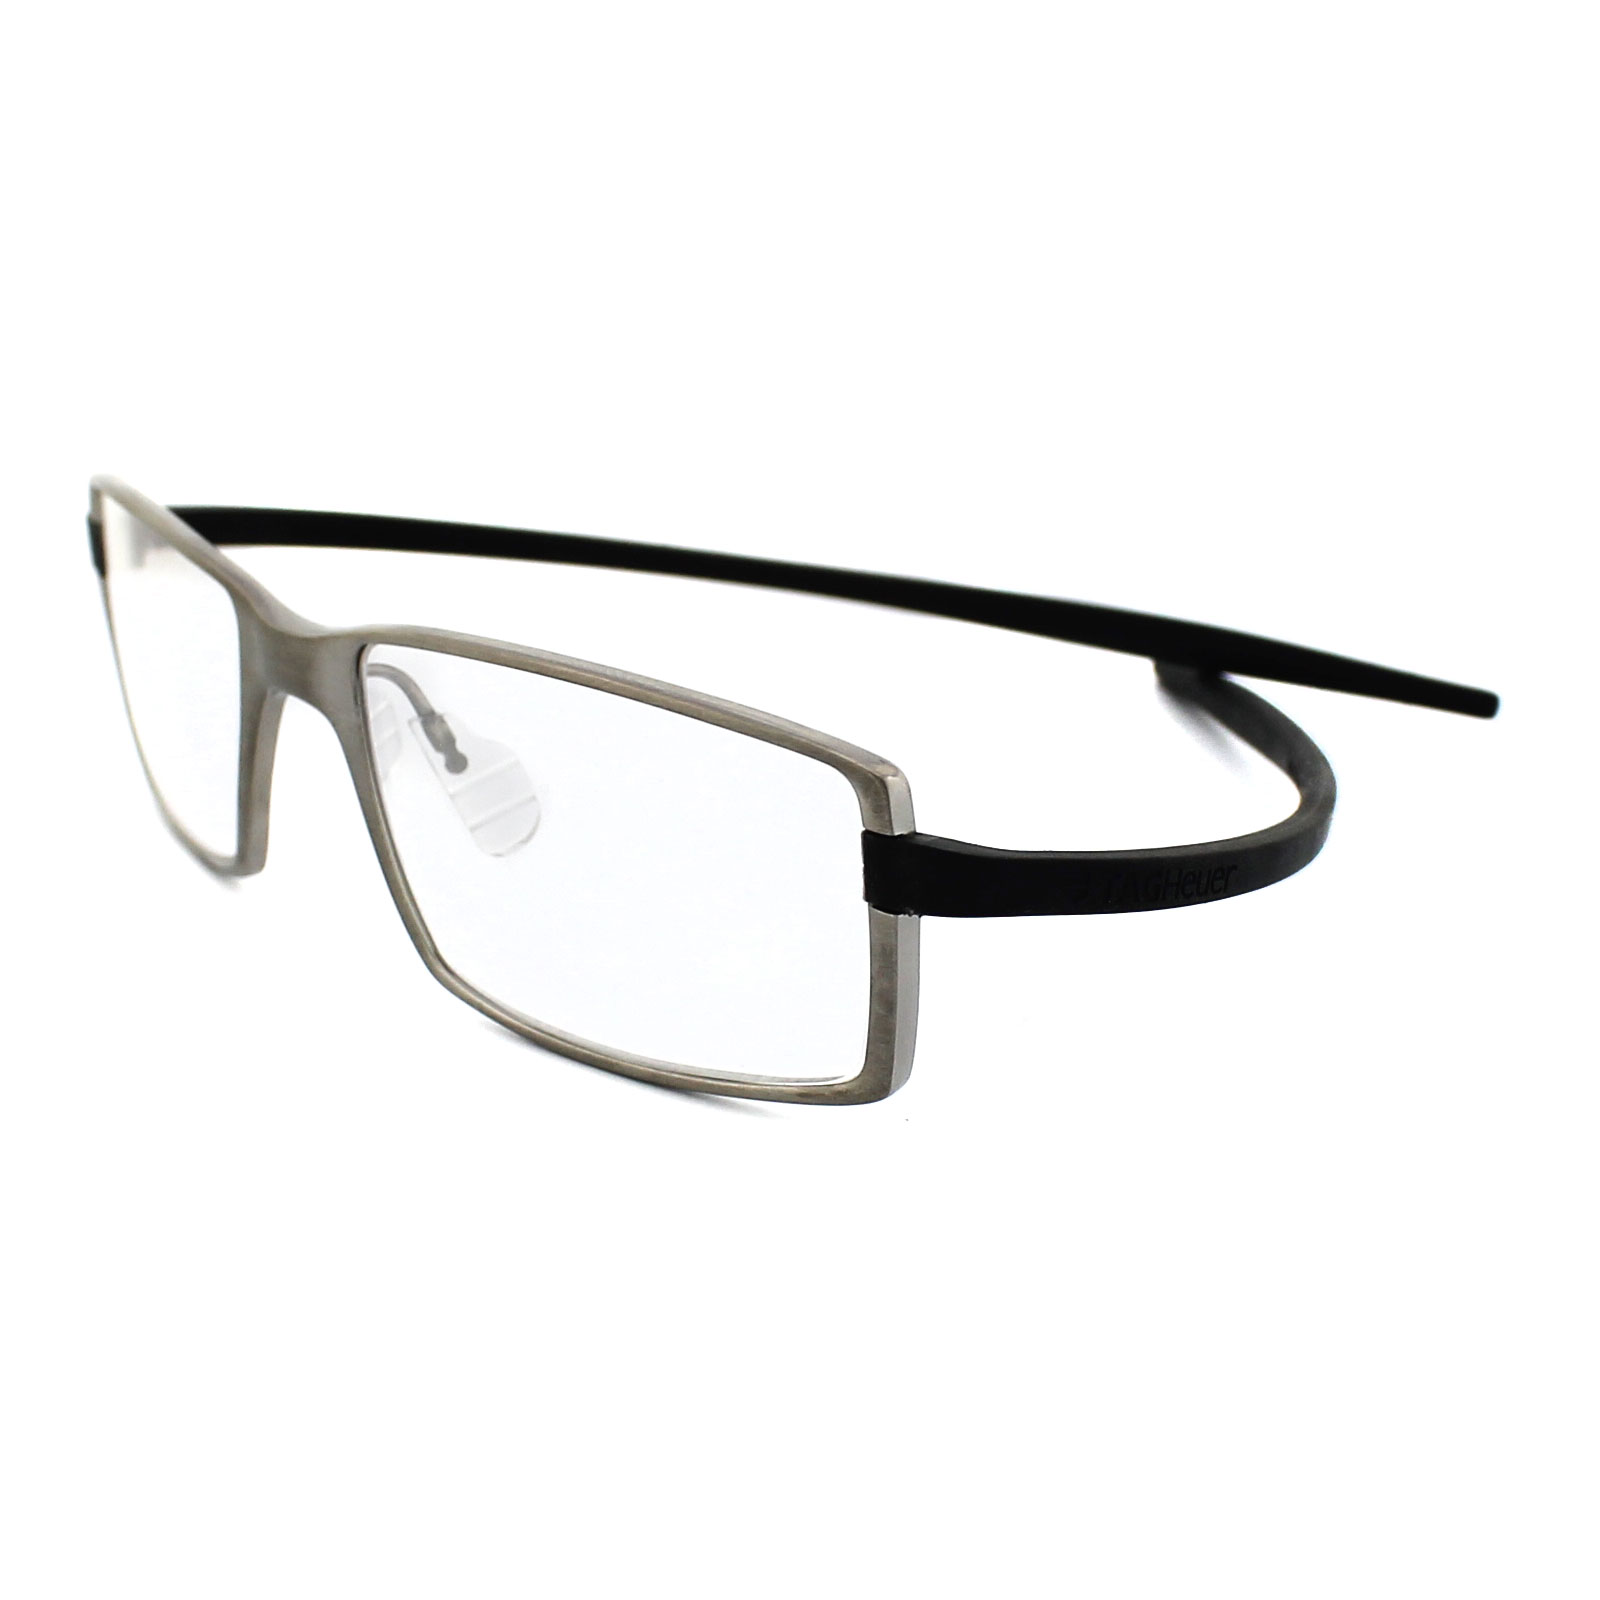 Eyeglasses Frame Tag Heuer : Cheap Tag Heuer Reflex 2 3702 Frames - Discounted Sunglasses